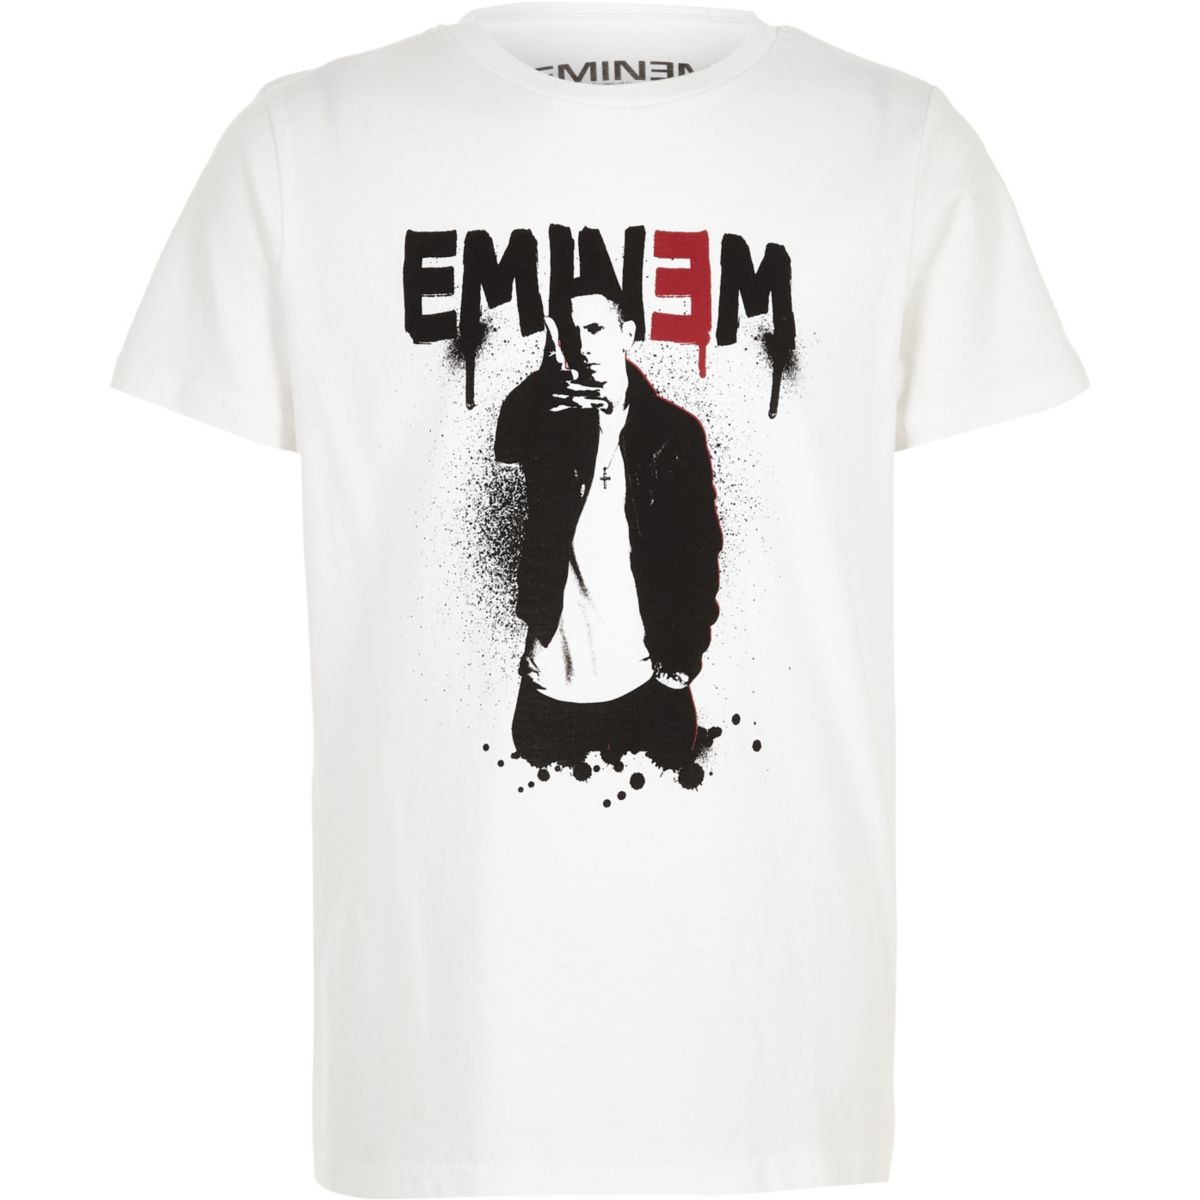 Boys white 'Eminem' T-shirt